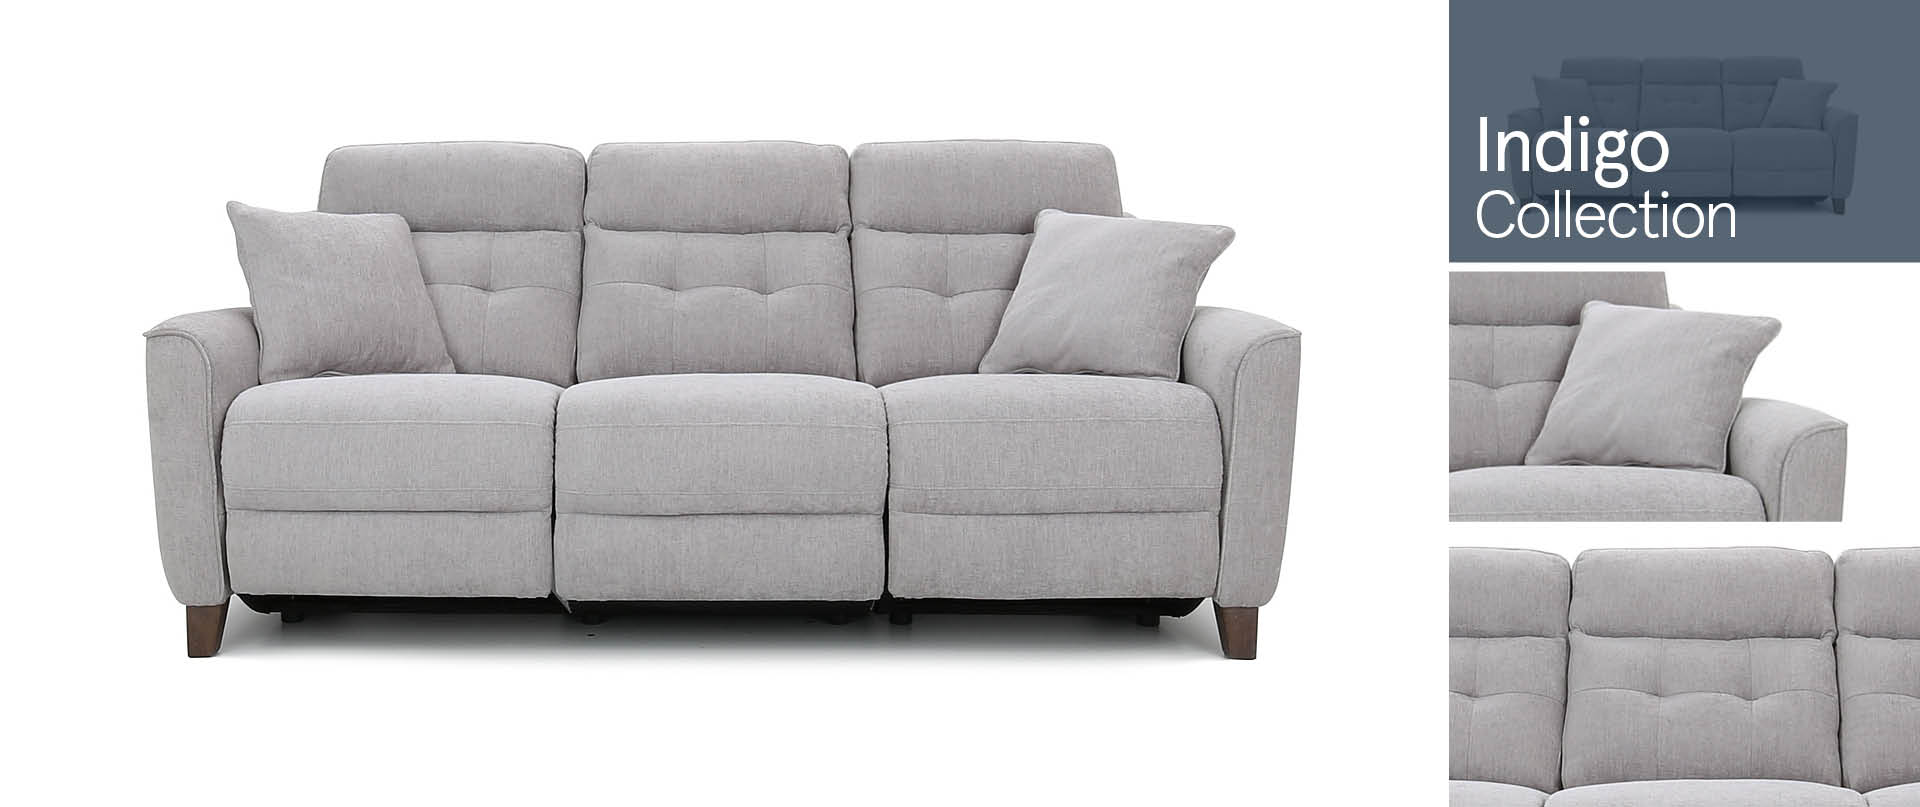 Indigo All Fabric Sofa Ranges